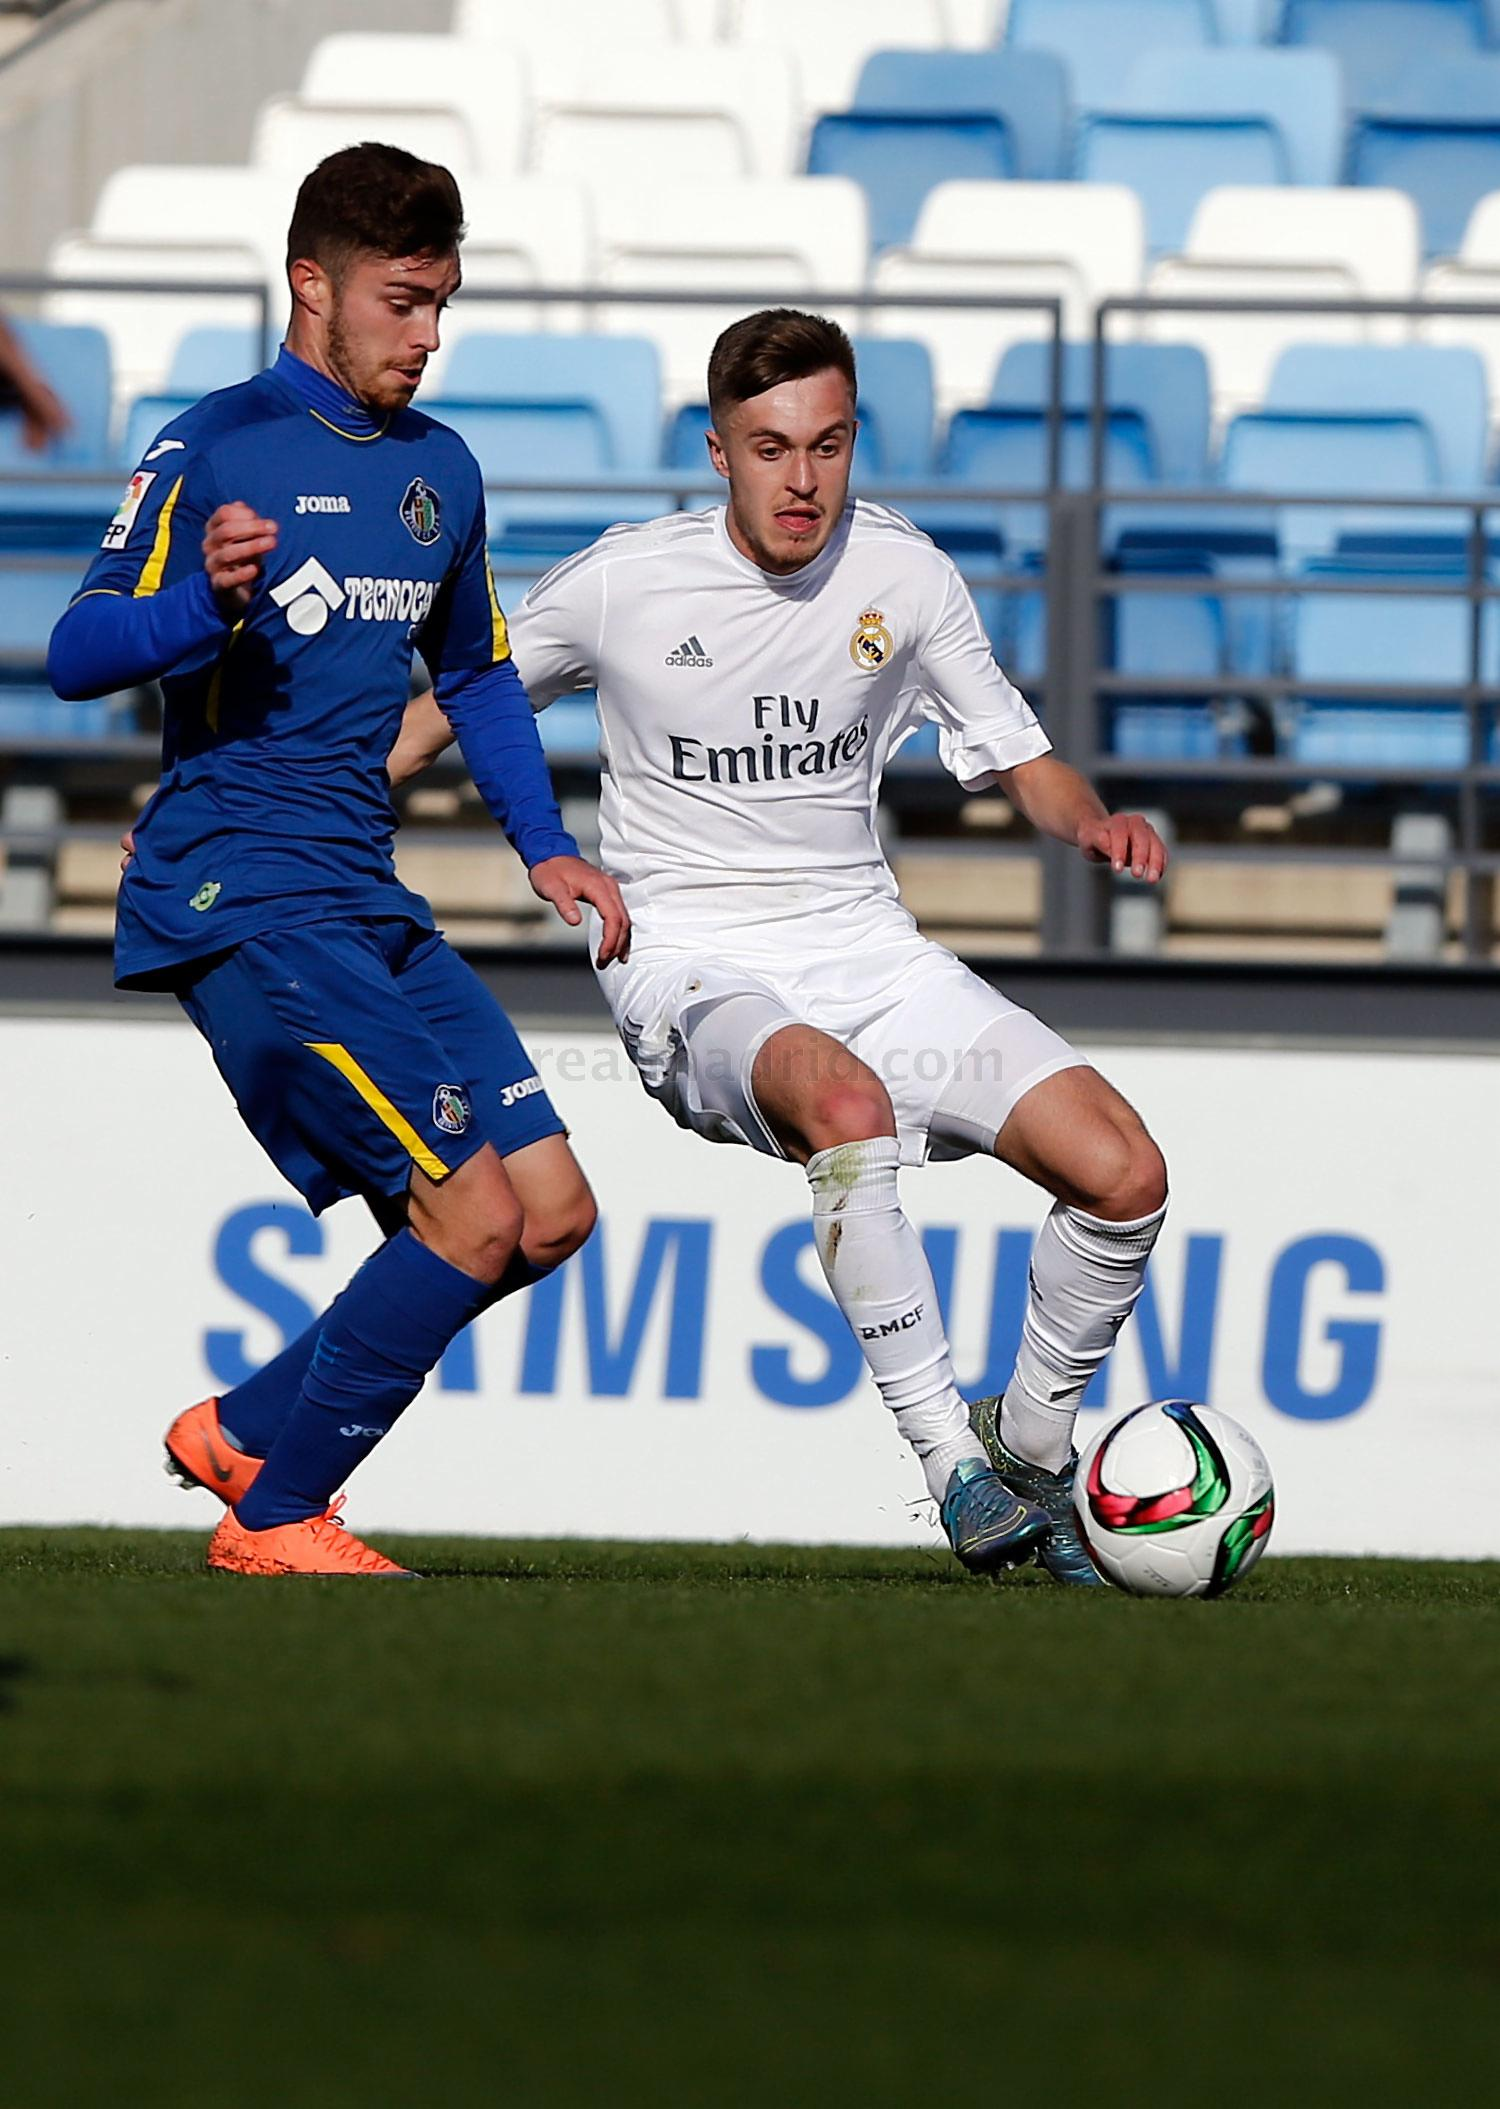 Real Madrid - Real Madrid Castilla - Getafe B - 19-03-2016